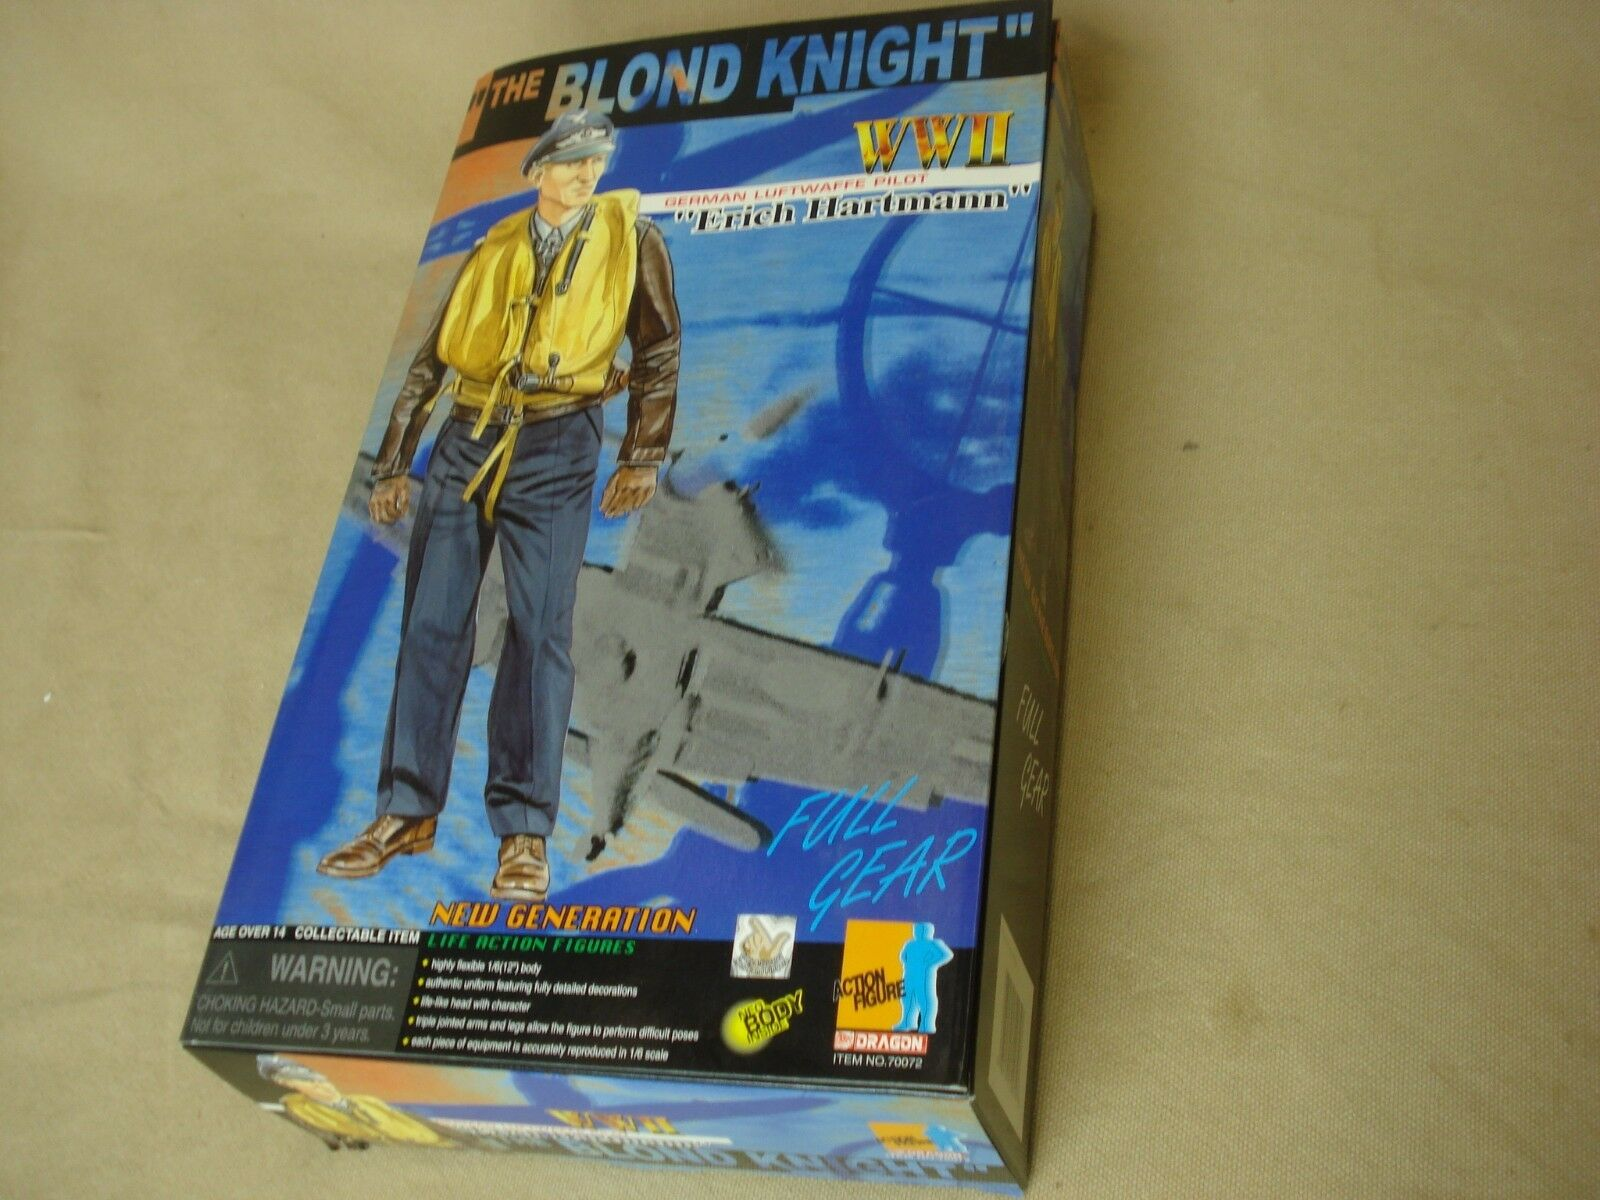 Dragon WWII The Blonde Knight    Erich Hartmann  Item  6 Scale new in box d0c146